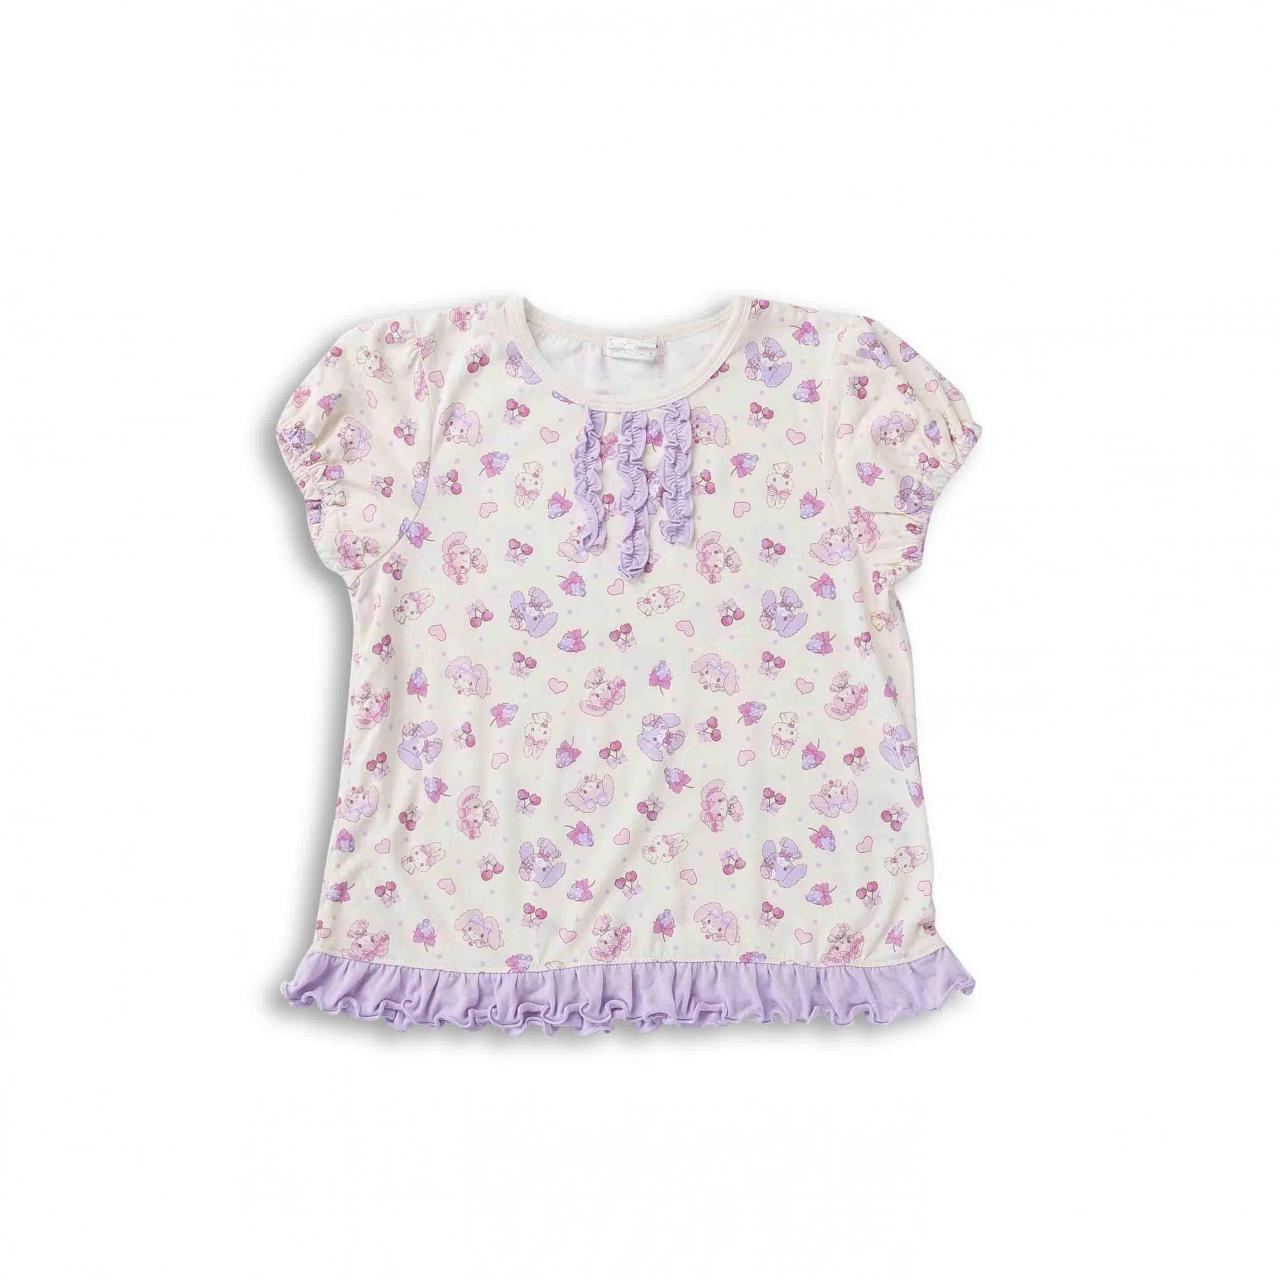 Quality clothing. clothes Tops 02 for sale